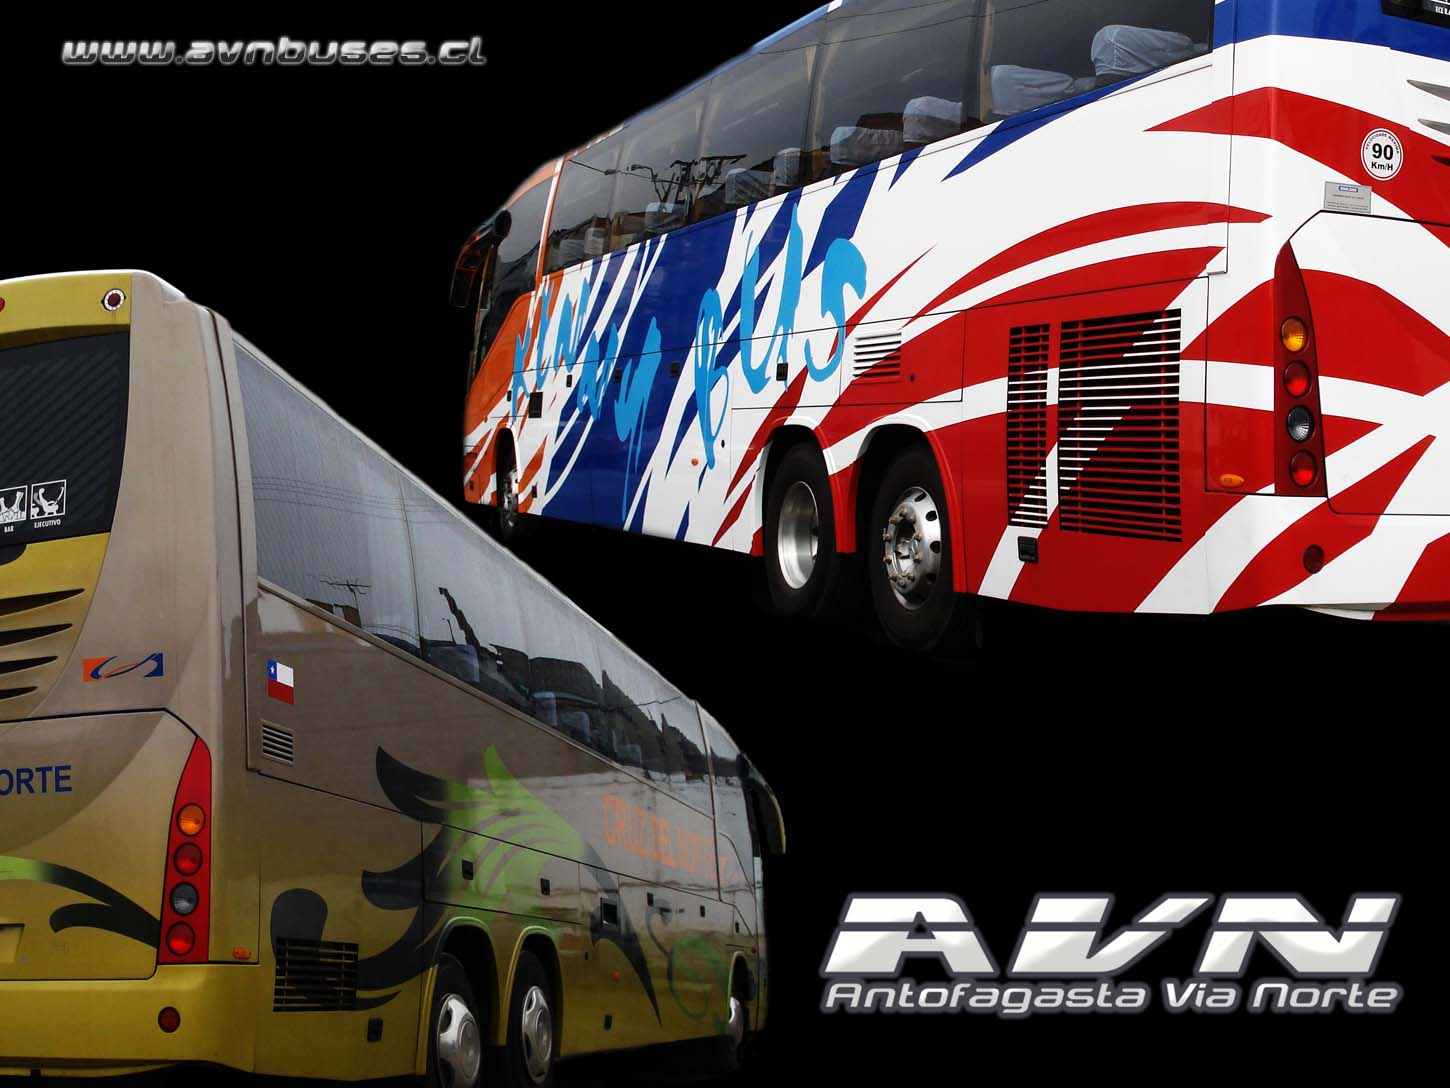 Wallpaper Cruz del Norte / Kenny Bus